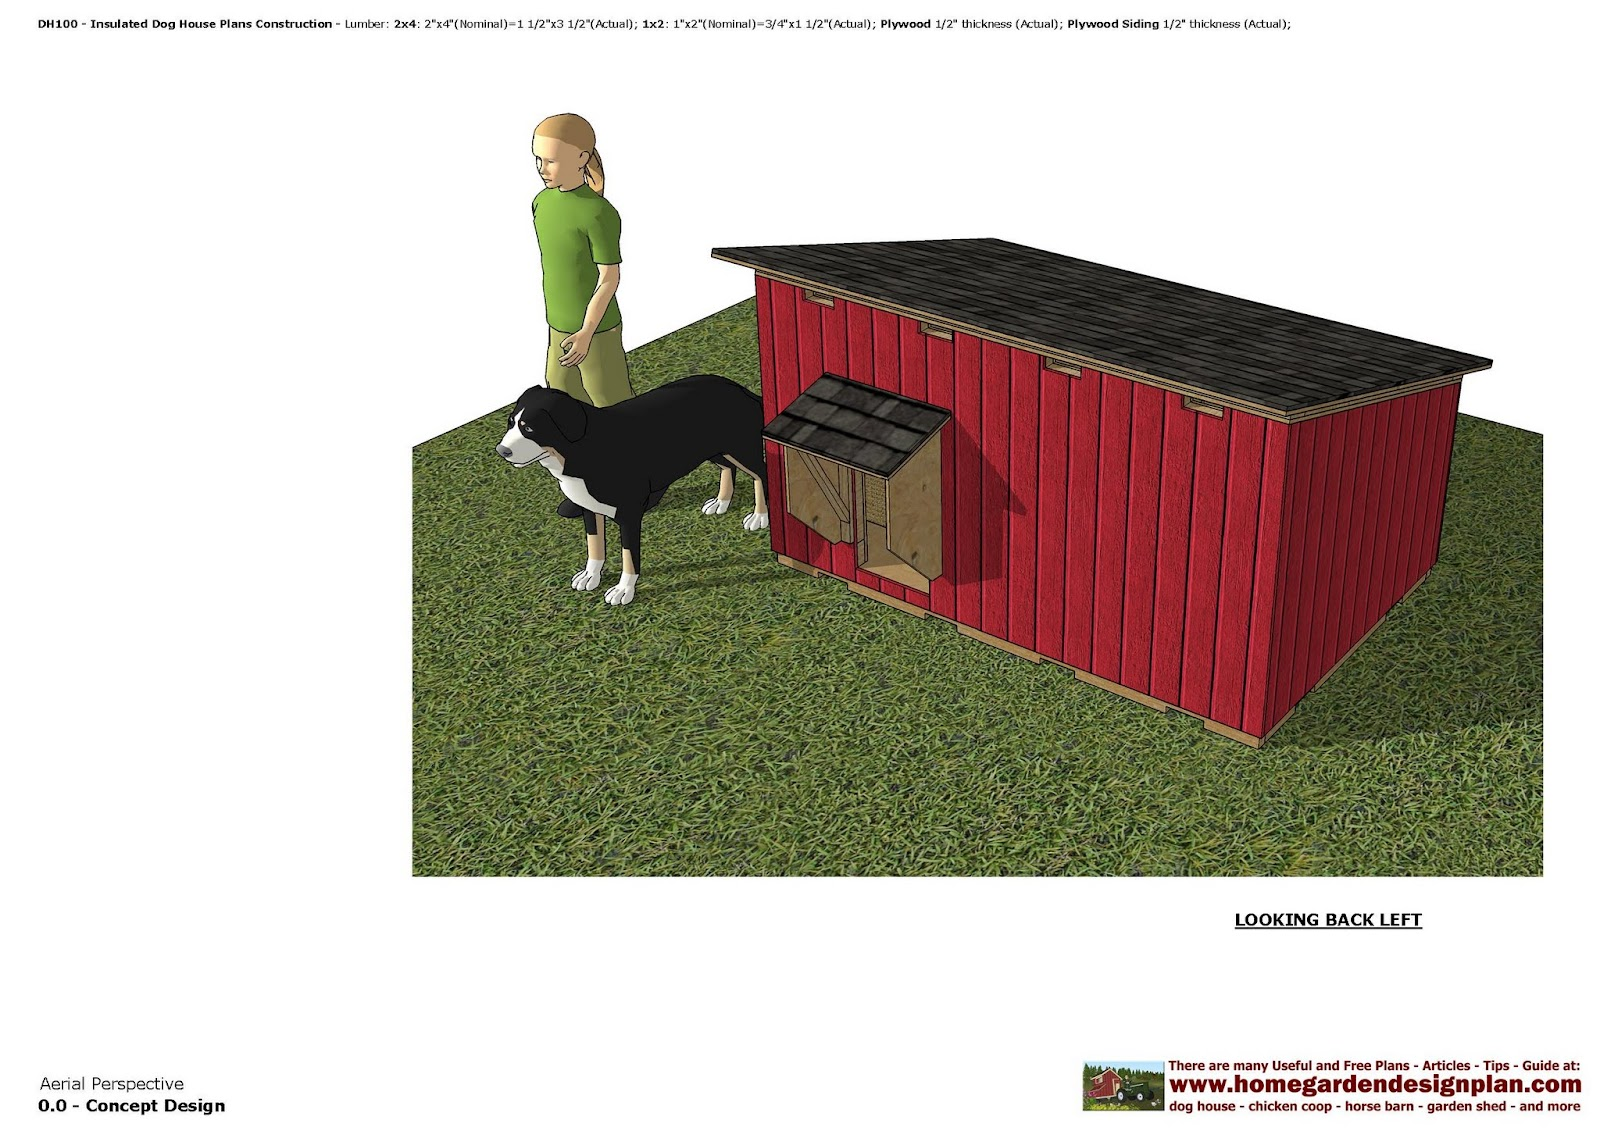 home garden plans  DH100   Insulated Dog House Plans   Dog House     DH100   Insulated Dog House Plans   Dog House Design   How To Build An Insulated  Dog House